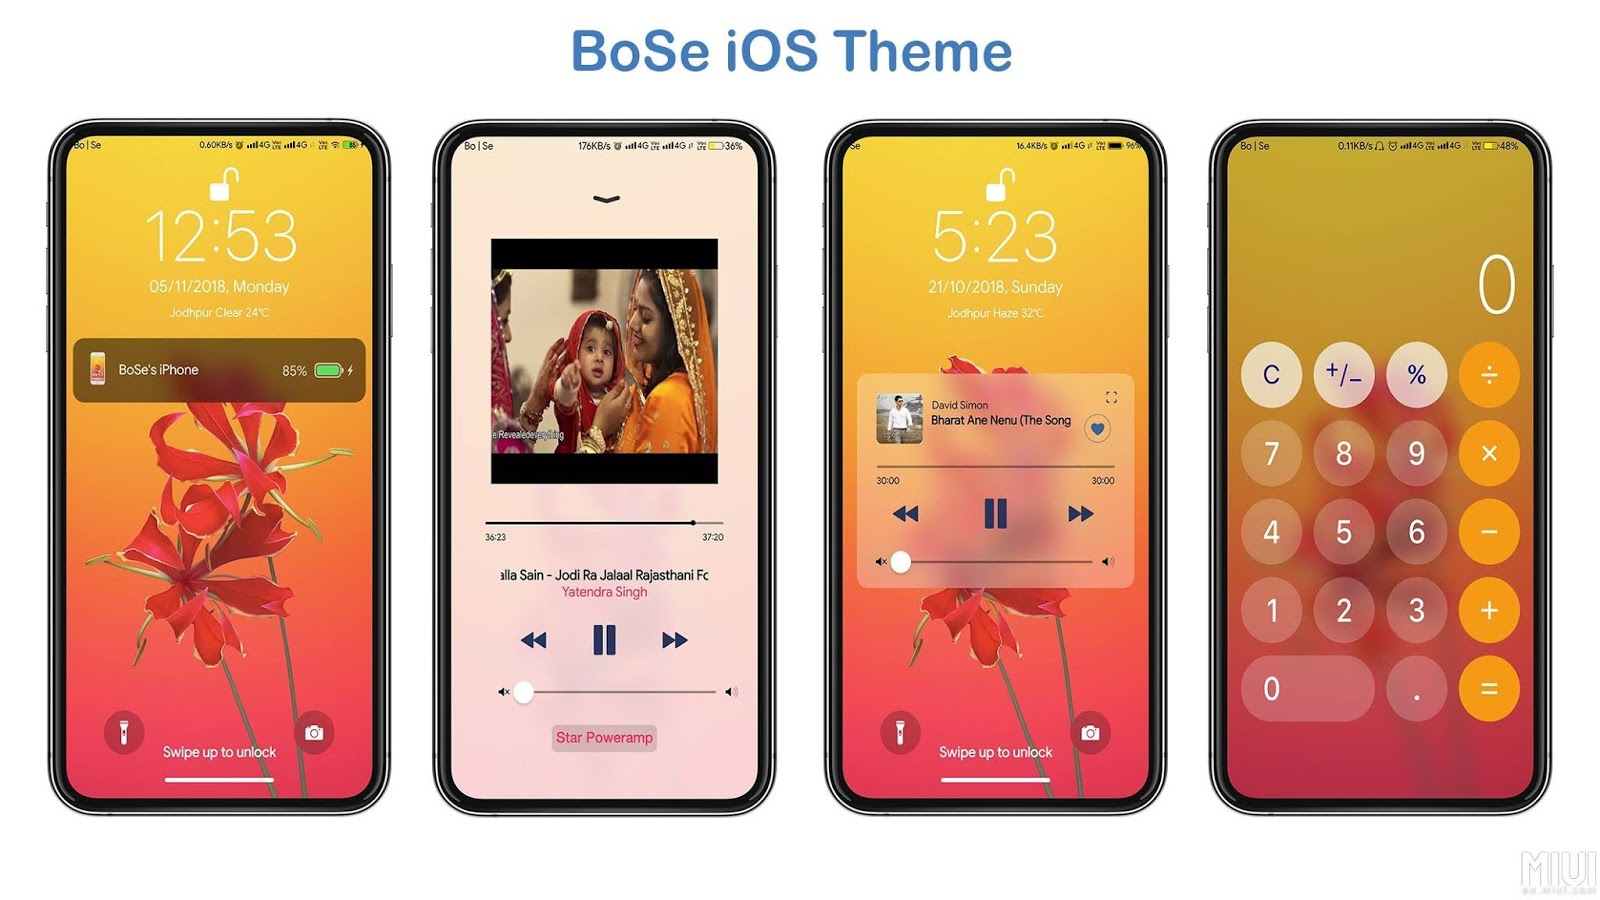 iPhone iOS BoSe V10 MIUI Theme Download For Xiaomi Mobile - MIUI Themes